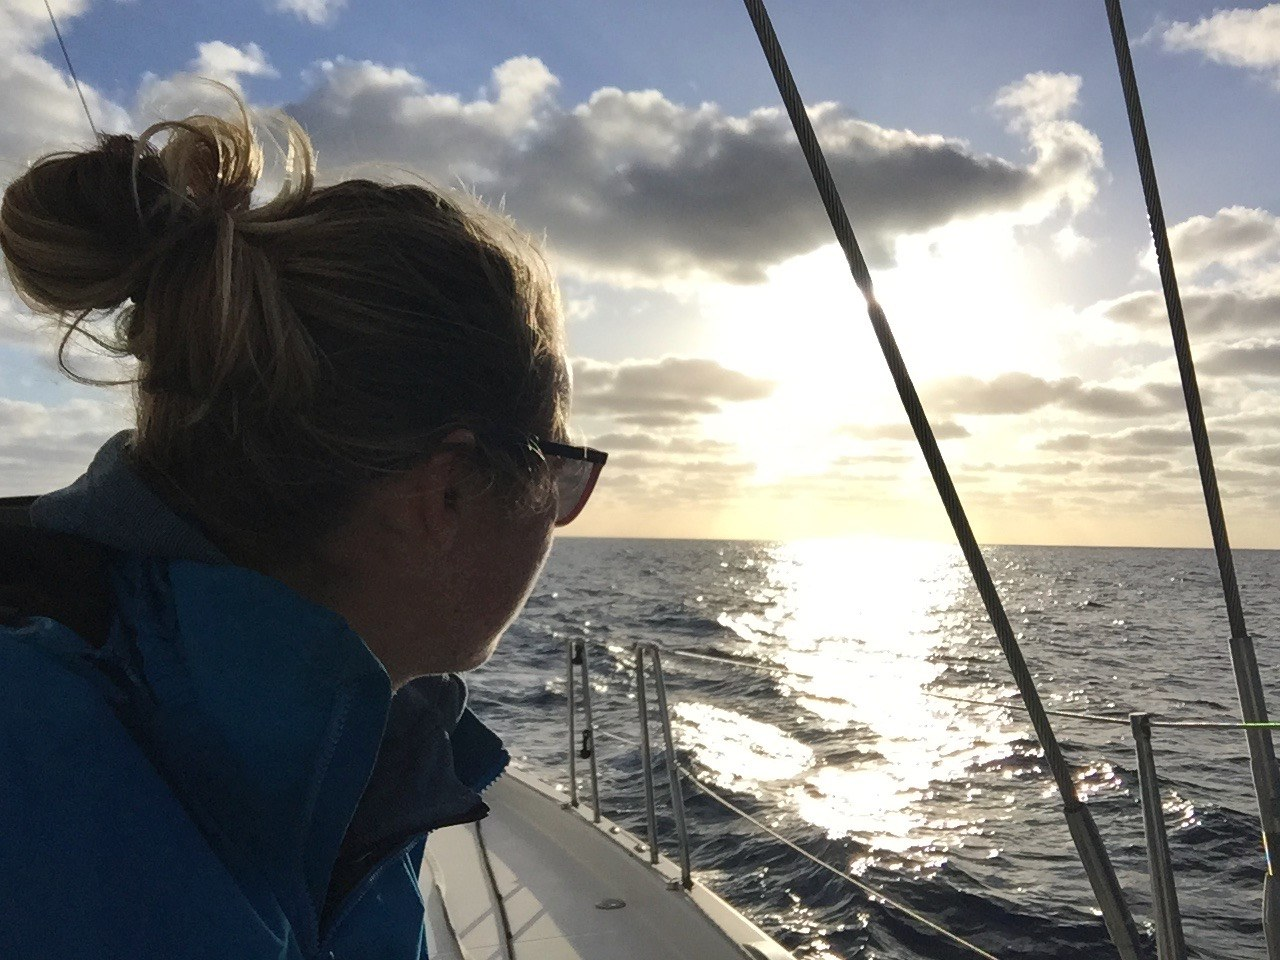 Offshore Sailing Tips: How to prepare, assess safety and minimize risk as crew?